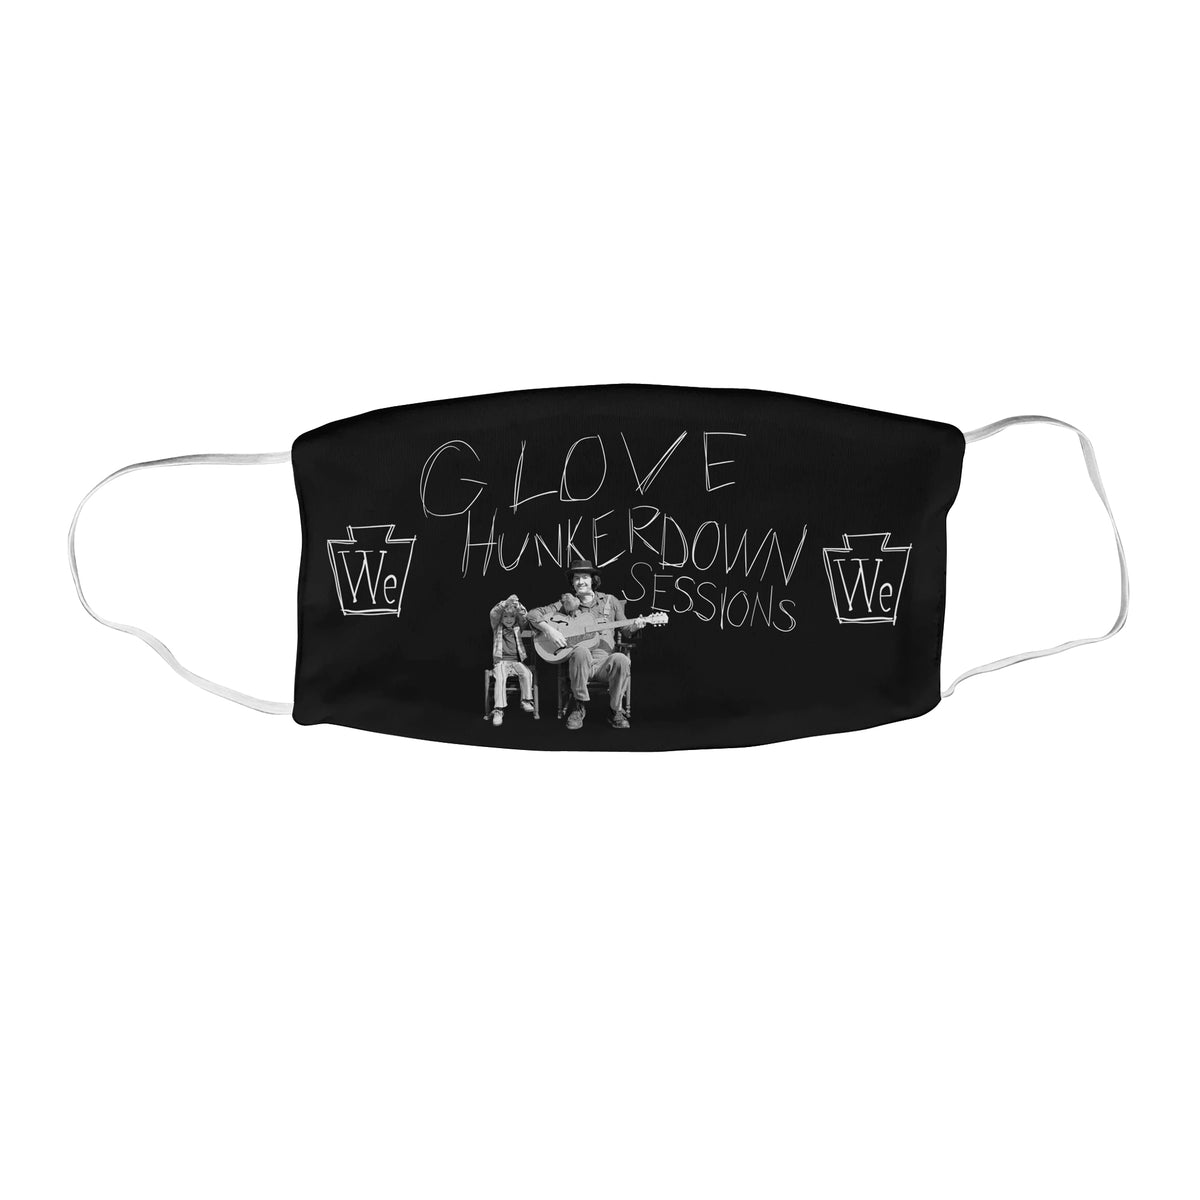 G. Love Hunkerdown Sessions We Support PA Face Mask